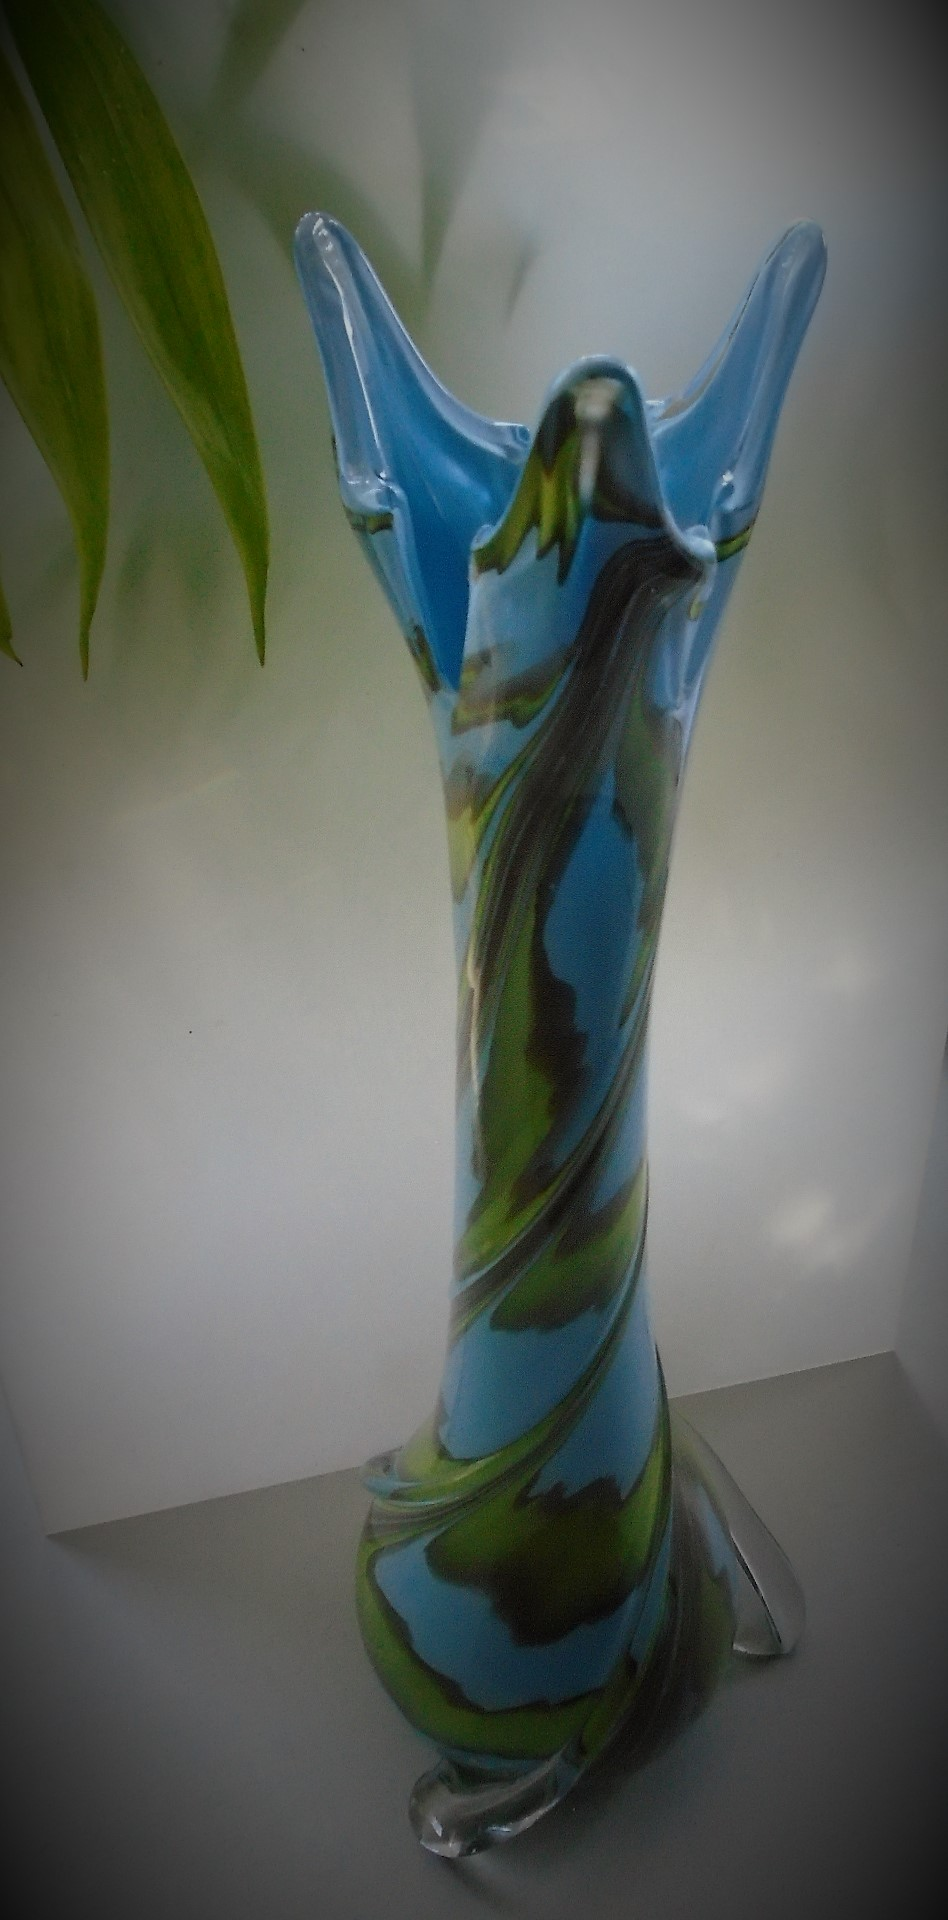 Stunning 60s vintage Empoli Cristalleria Fratelli Betti Sky Blue and Grass Green  Glass vase with clear glass ribbing spiraling from the base